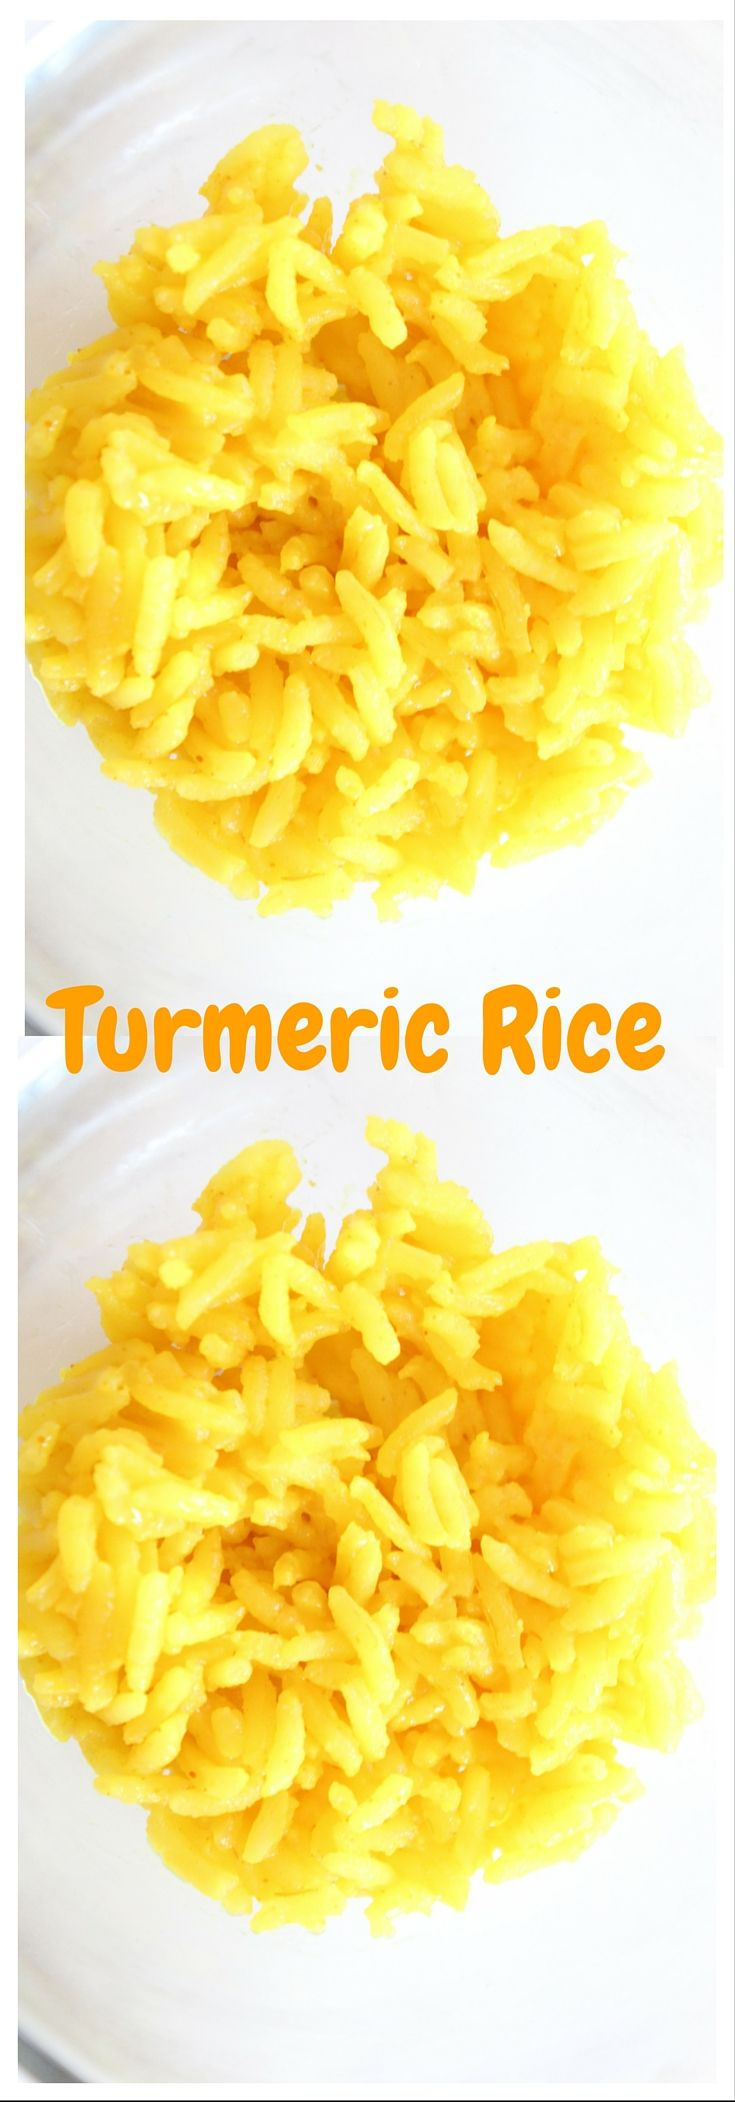 This tasty turmeric rice has minimal ingredients and is ready to eat in 20 minutes or less.                                                                                                                                                      More